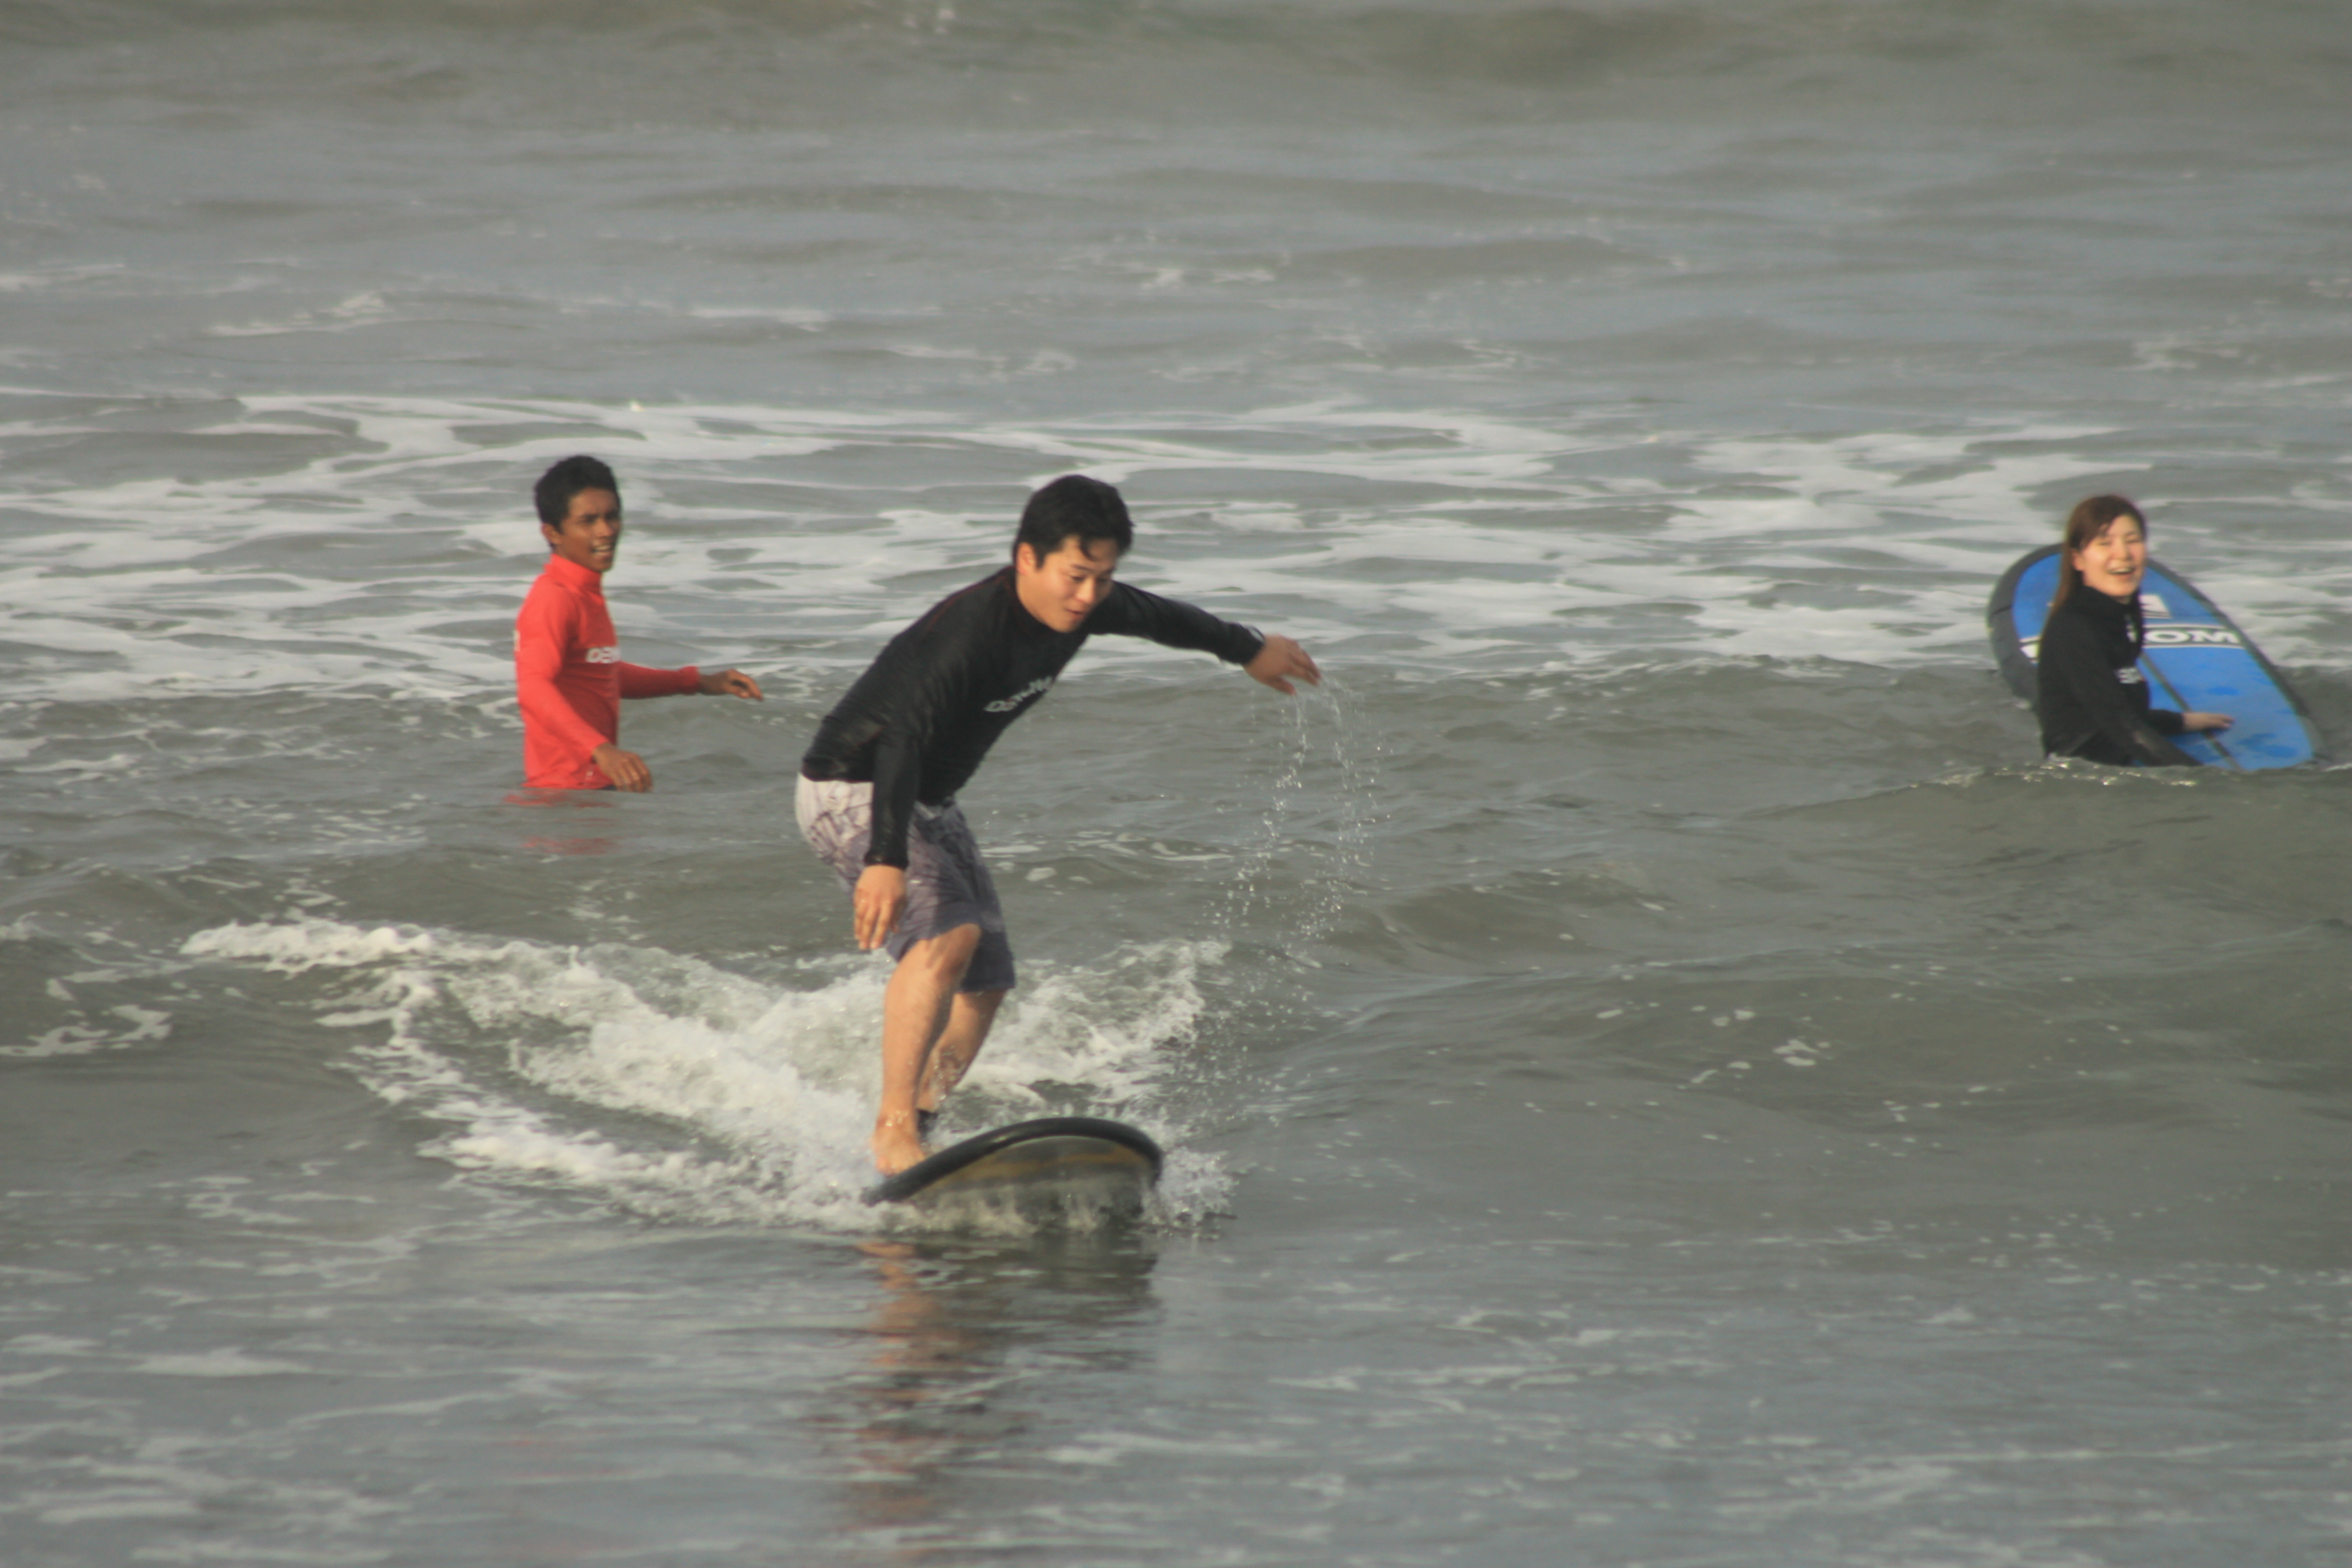 Surf Lessons Bali - Learn How To Ride Waves From The Pro ...